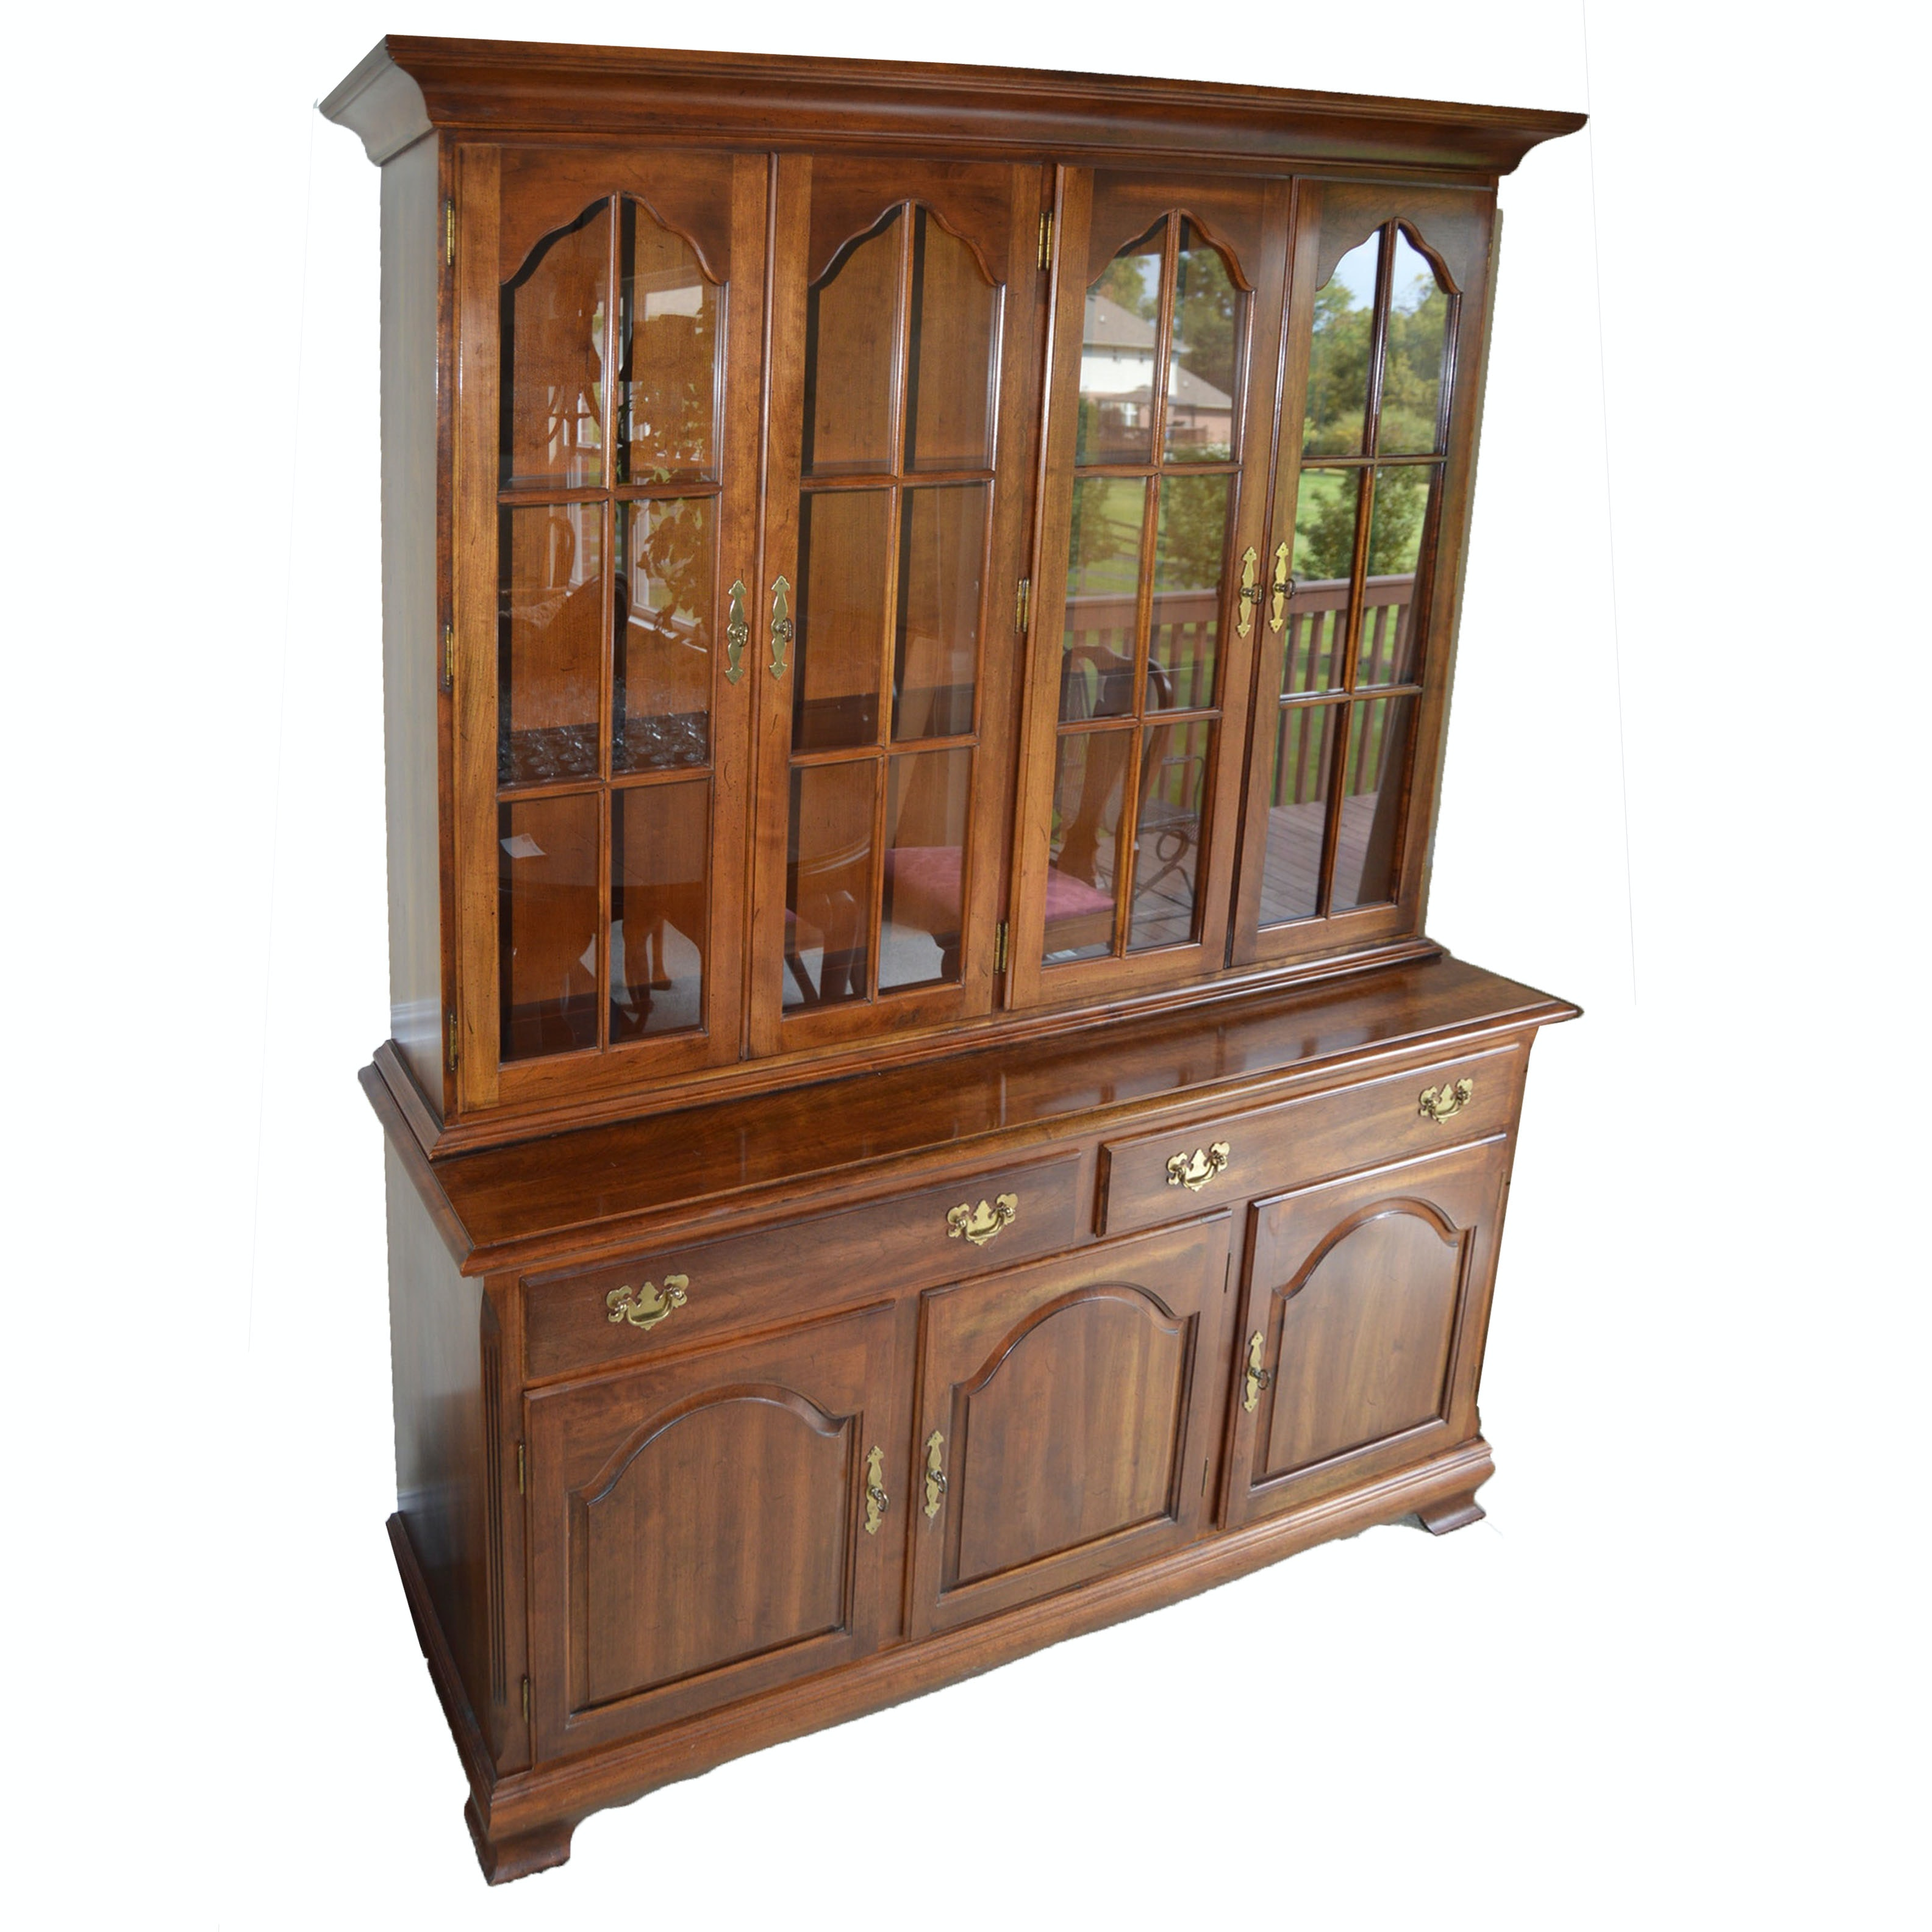 Solid Cherry Dining Hutch by Cresent Furniture